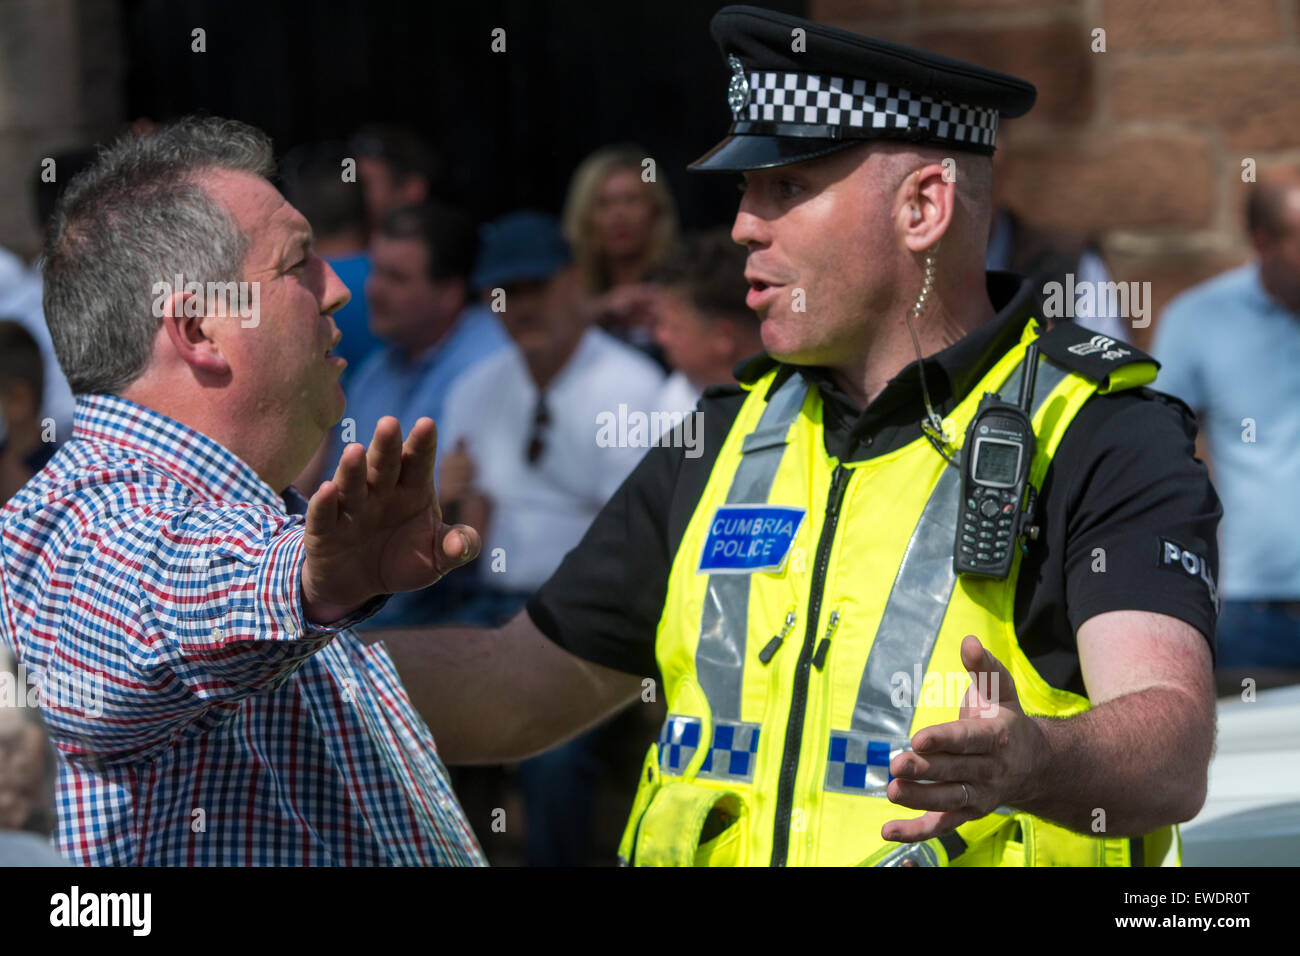 Police man and a horse owner having a discussion about where horses can be left in the town. Appleby Horse Fair - Stock Image